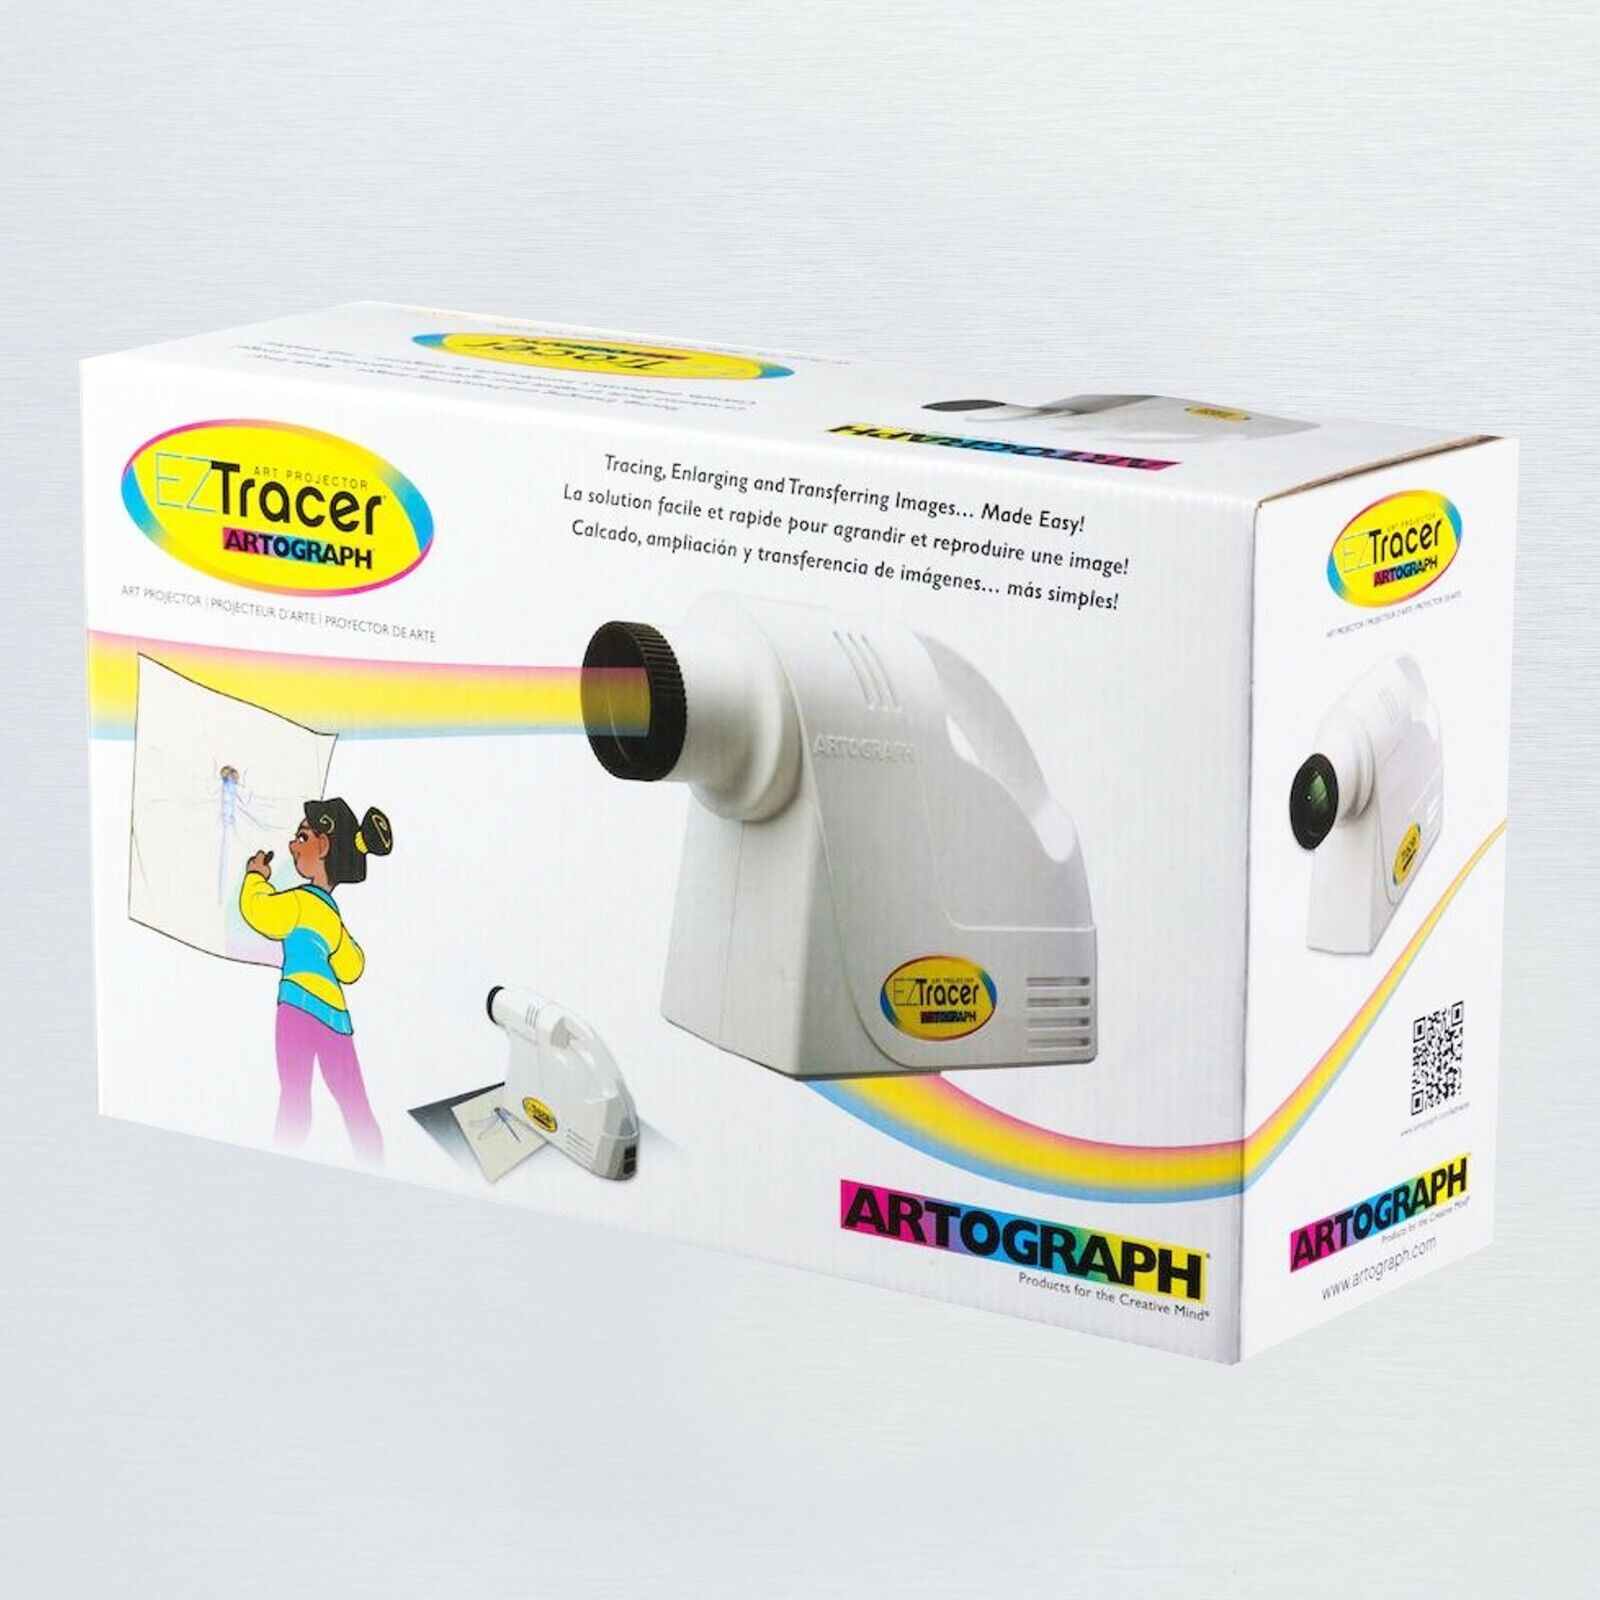 14x Magnification Artograph Tracer Projector /& Enlarger 2x in Box White